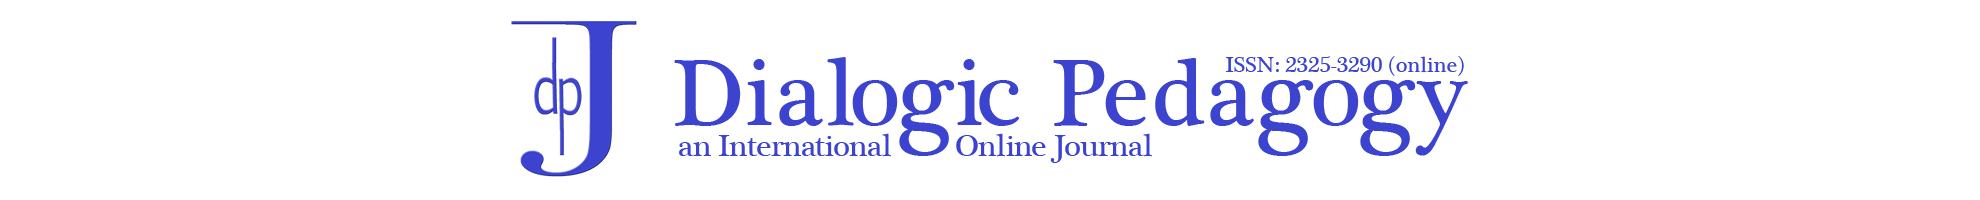 Dialogic Pedagogy: An International Online Journal